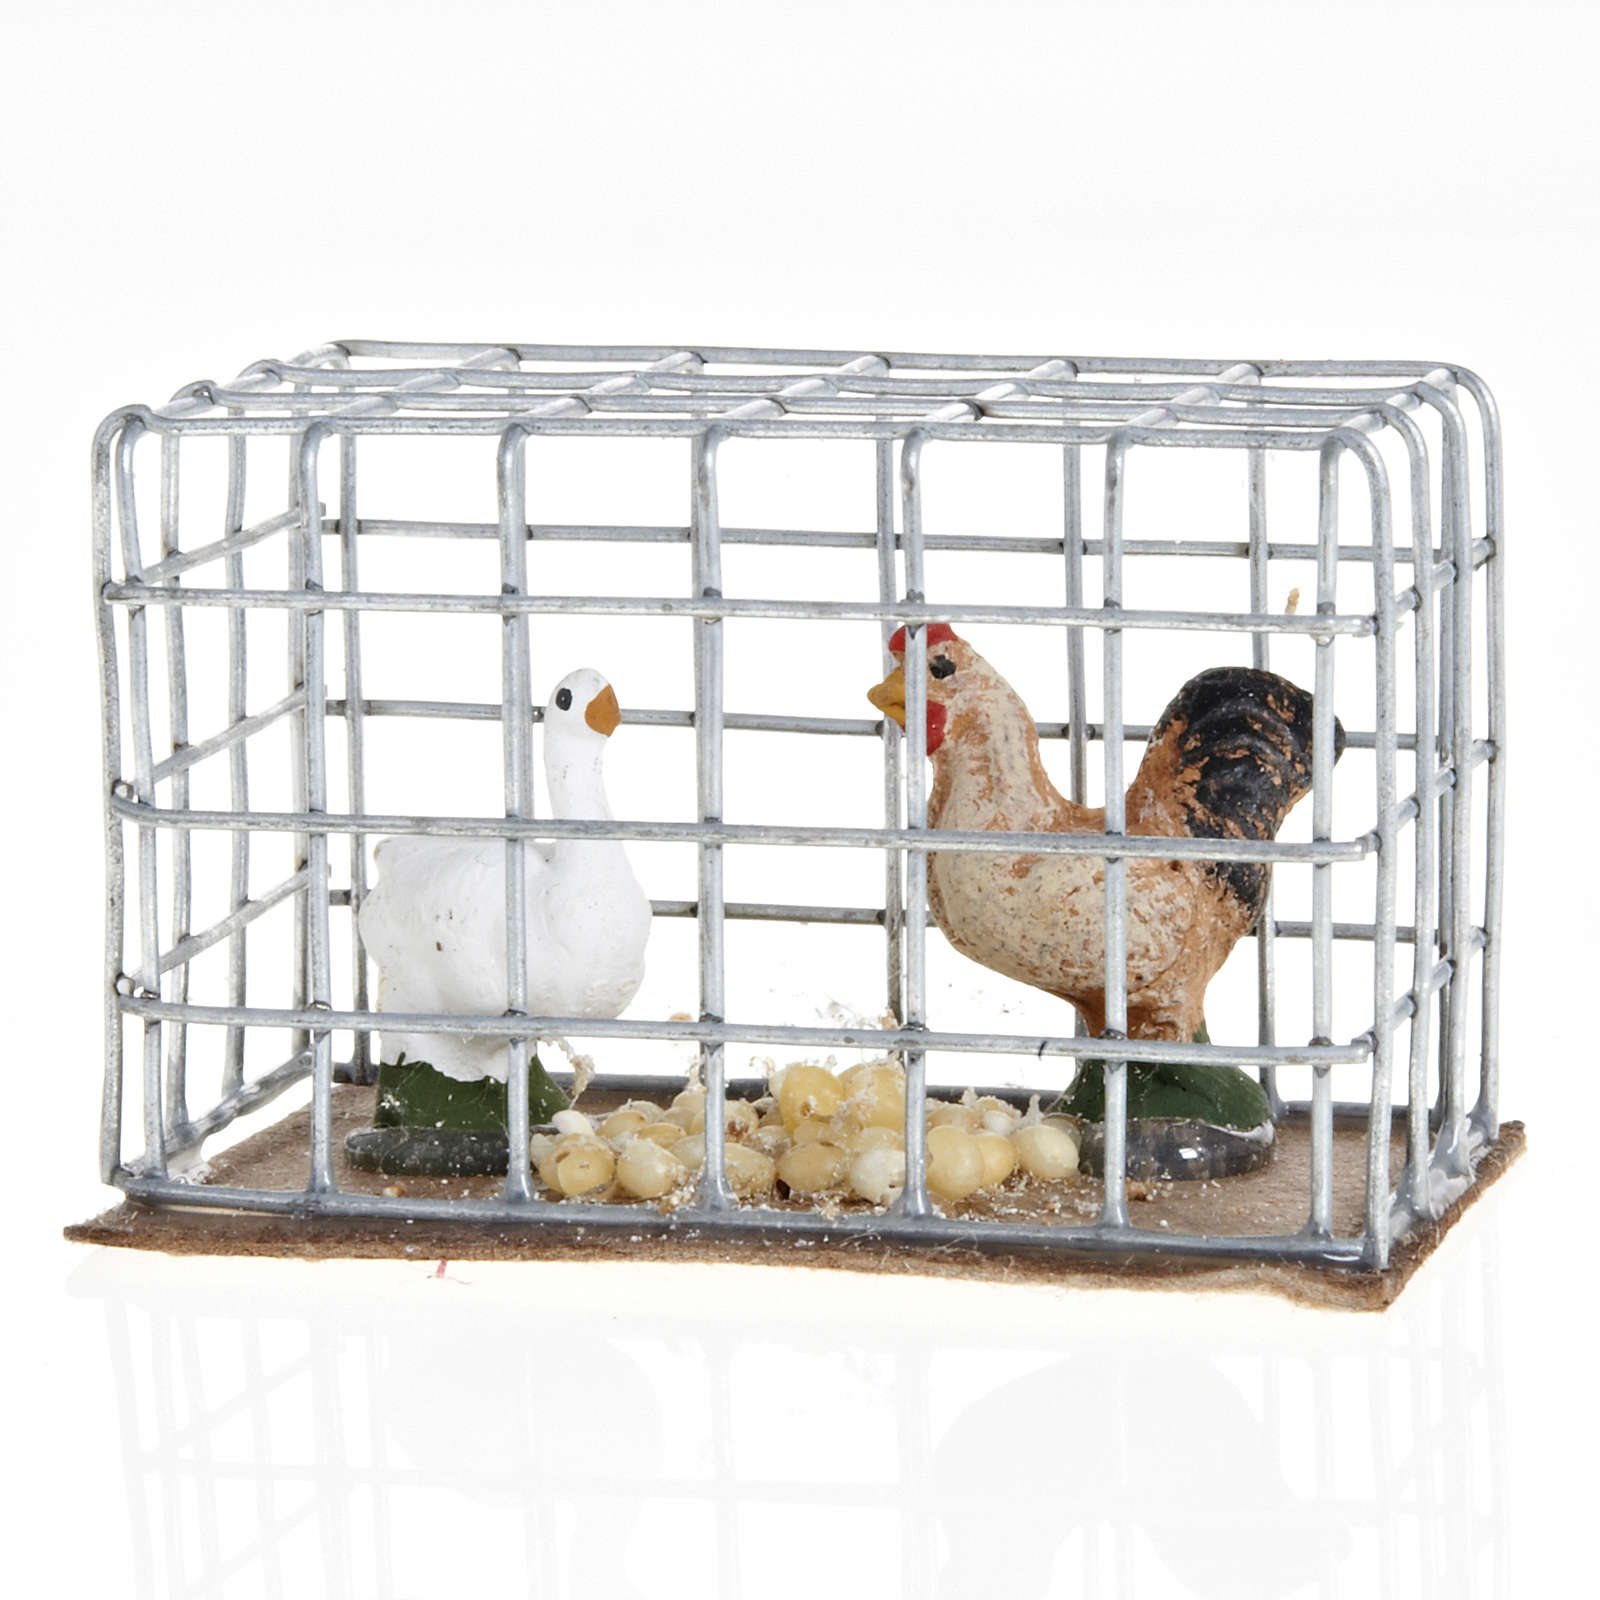 Chickens in a cage 3cm 4